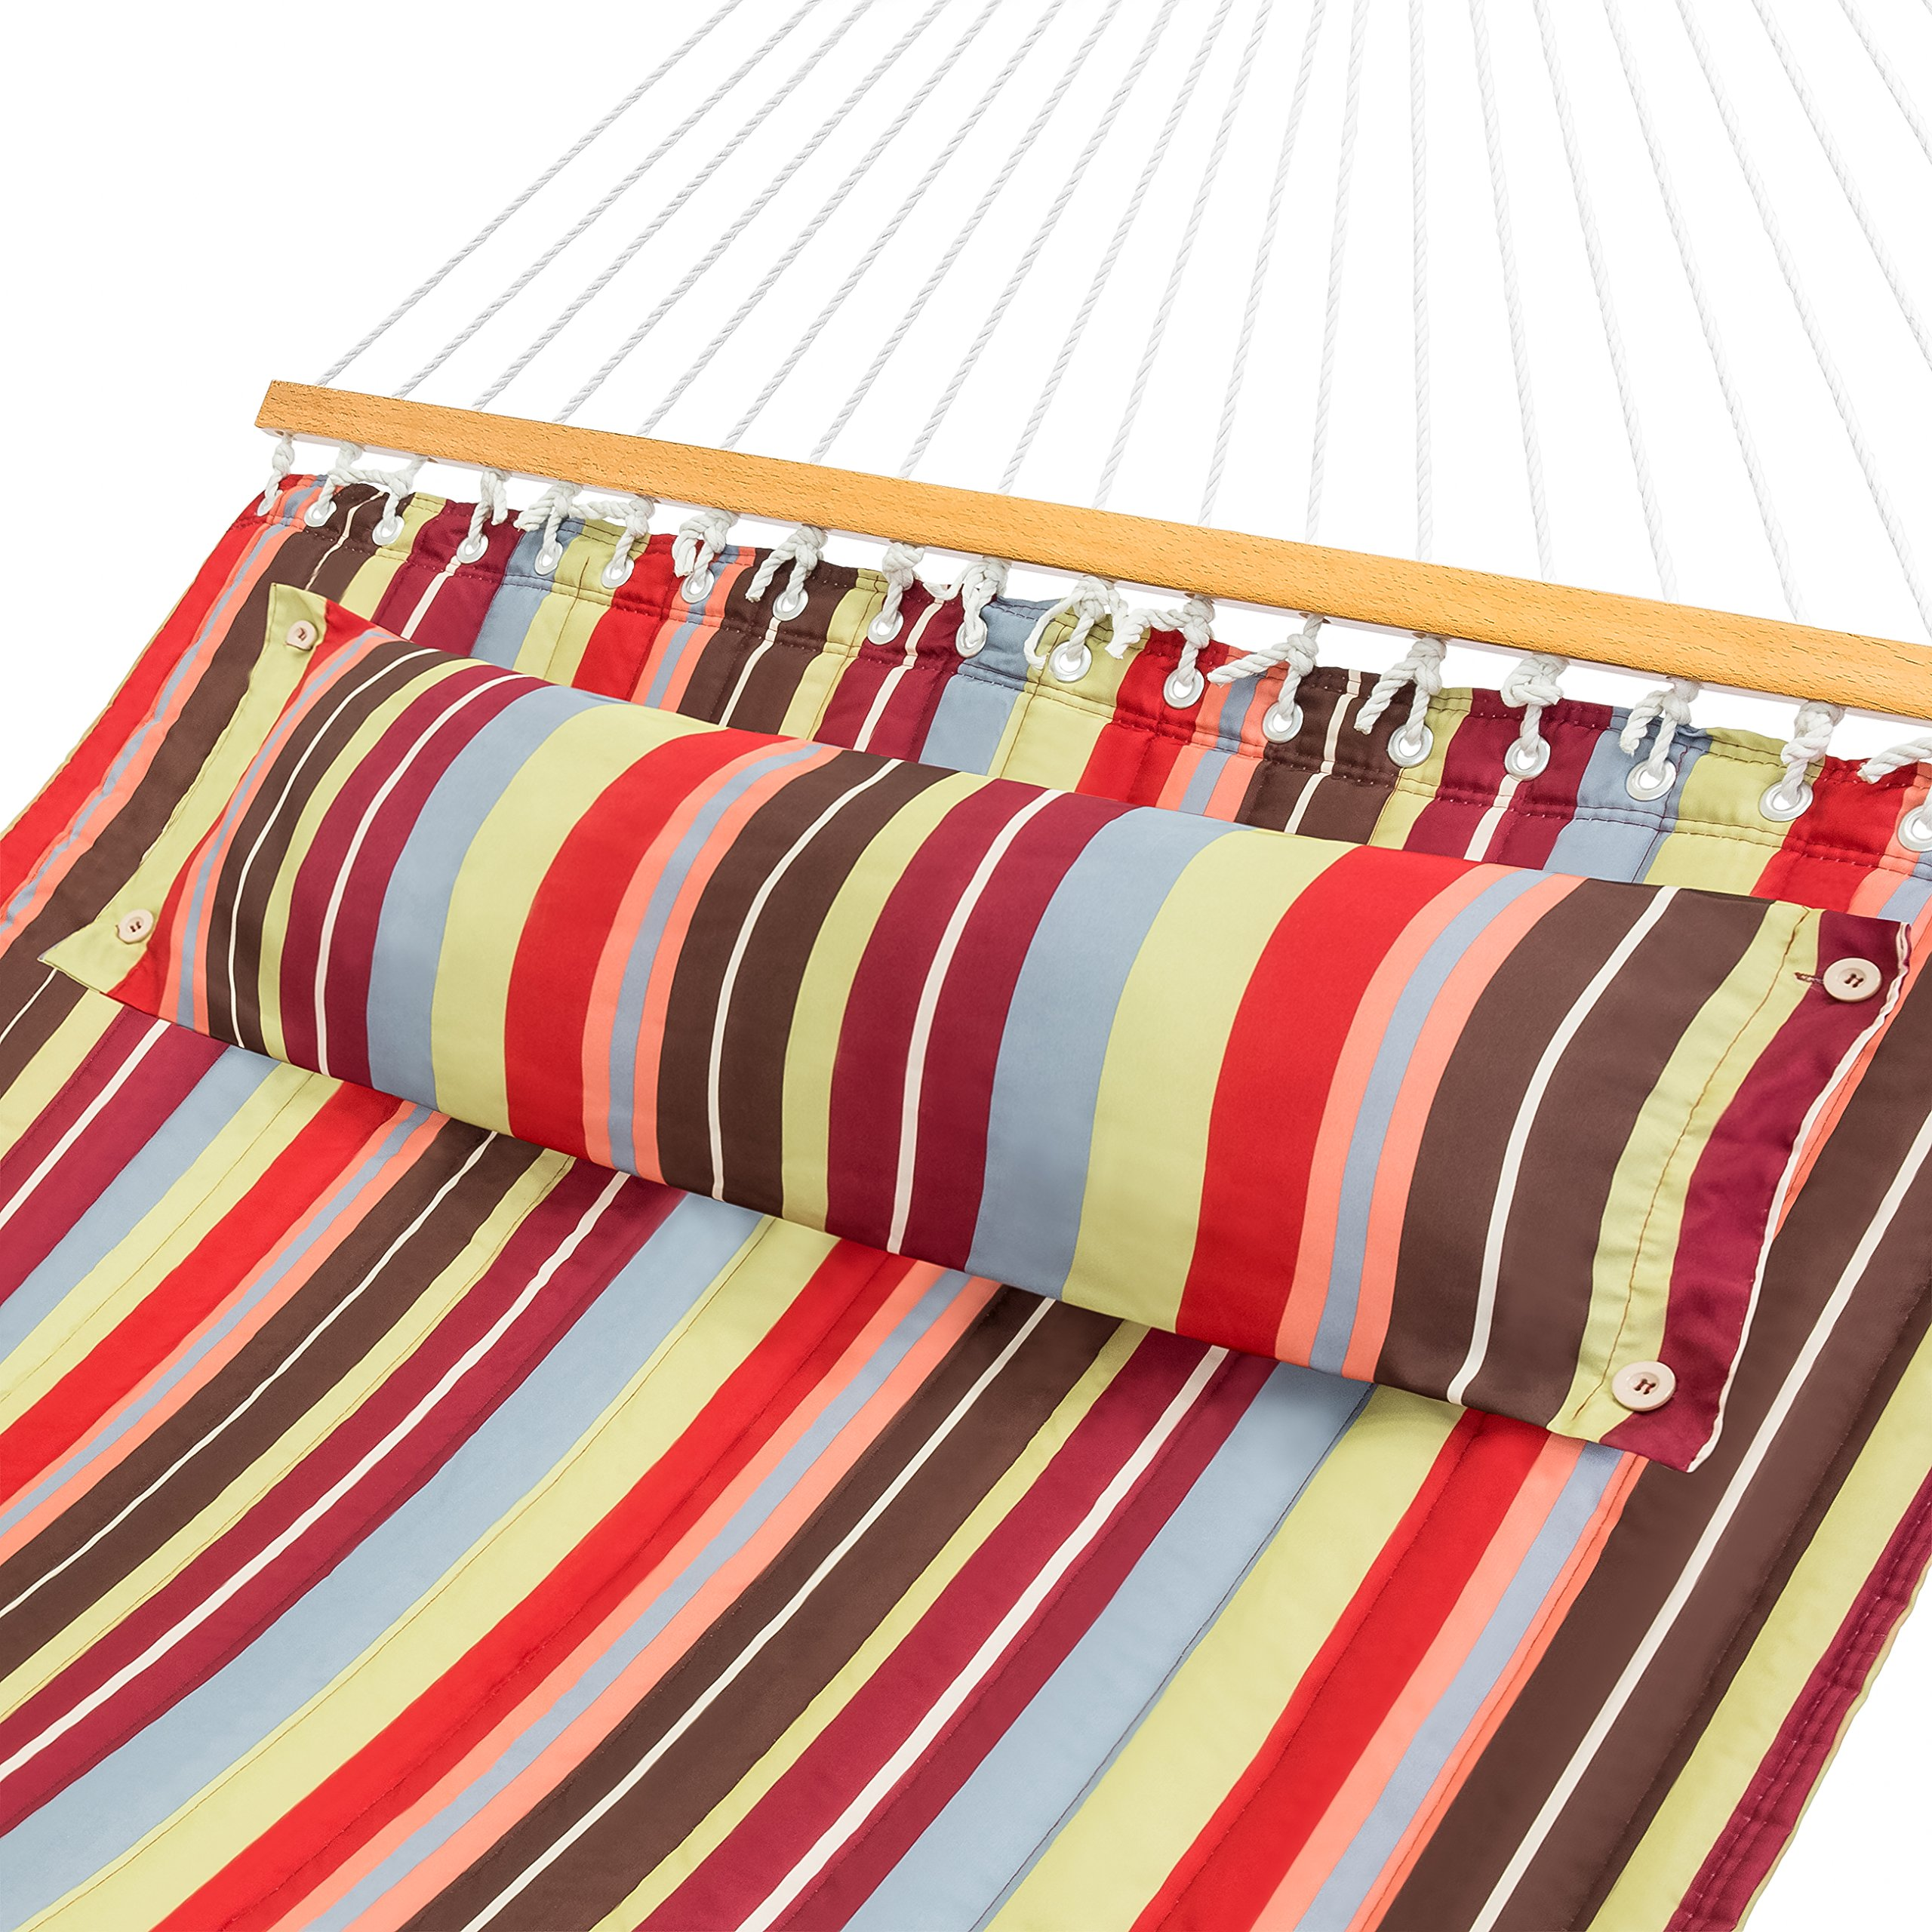 Best Choice Products Quilted Double Hammock w/Detachable Pillow, Spreader Bar - Red and Blue Stripe